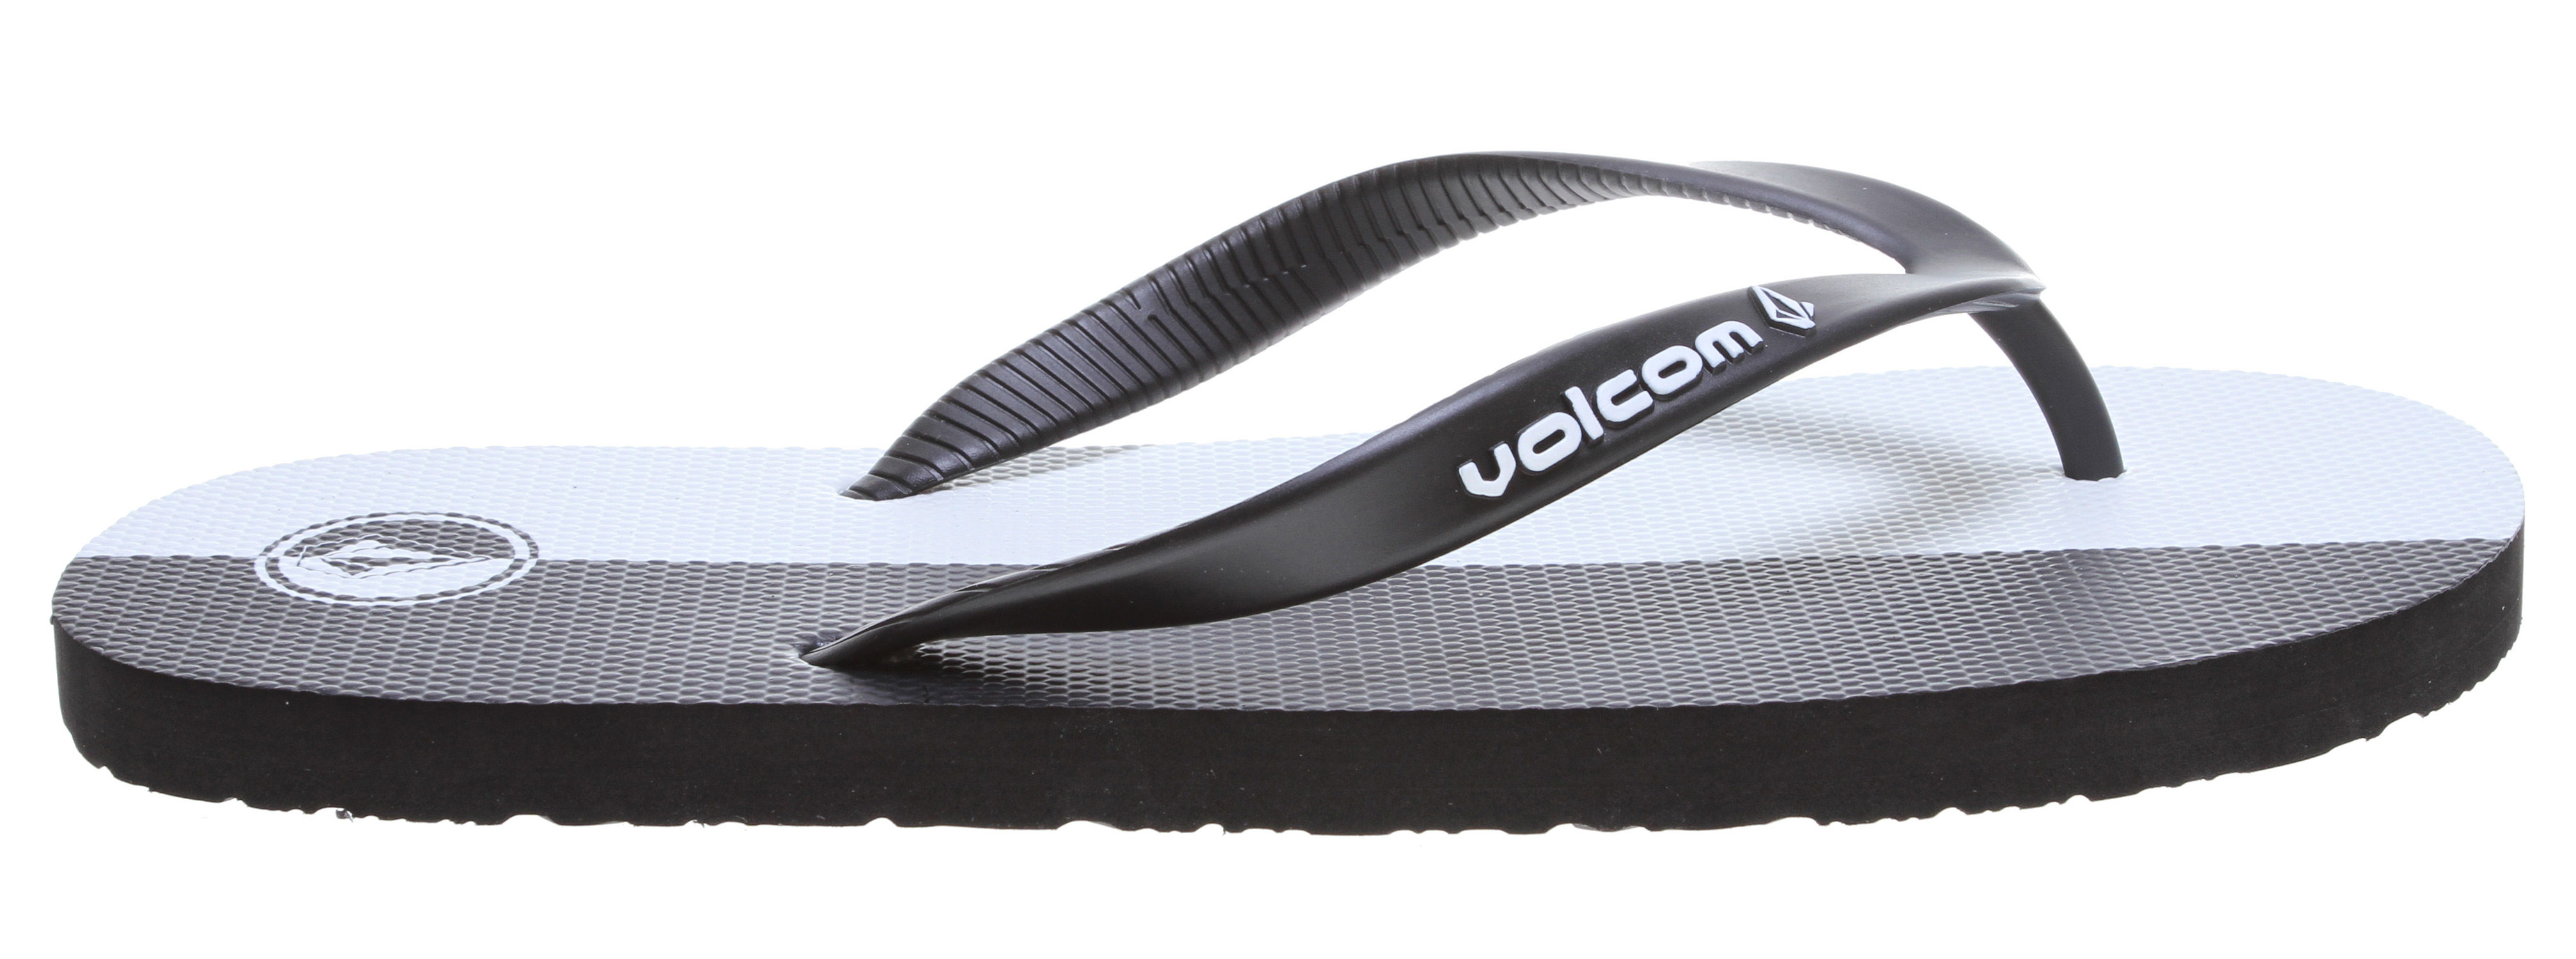 Surf Key Features of the Volcom Rocker Sandals: 3 anchor, molded TPU strap with enamel logo detail Textured, single density EVA top sole High density EVA outsole - $10.95